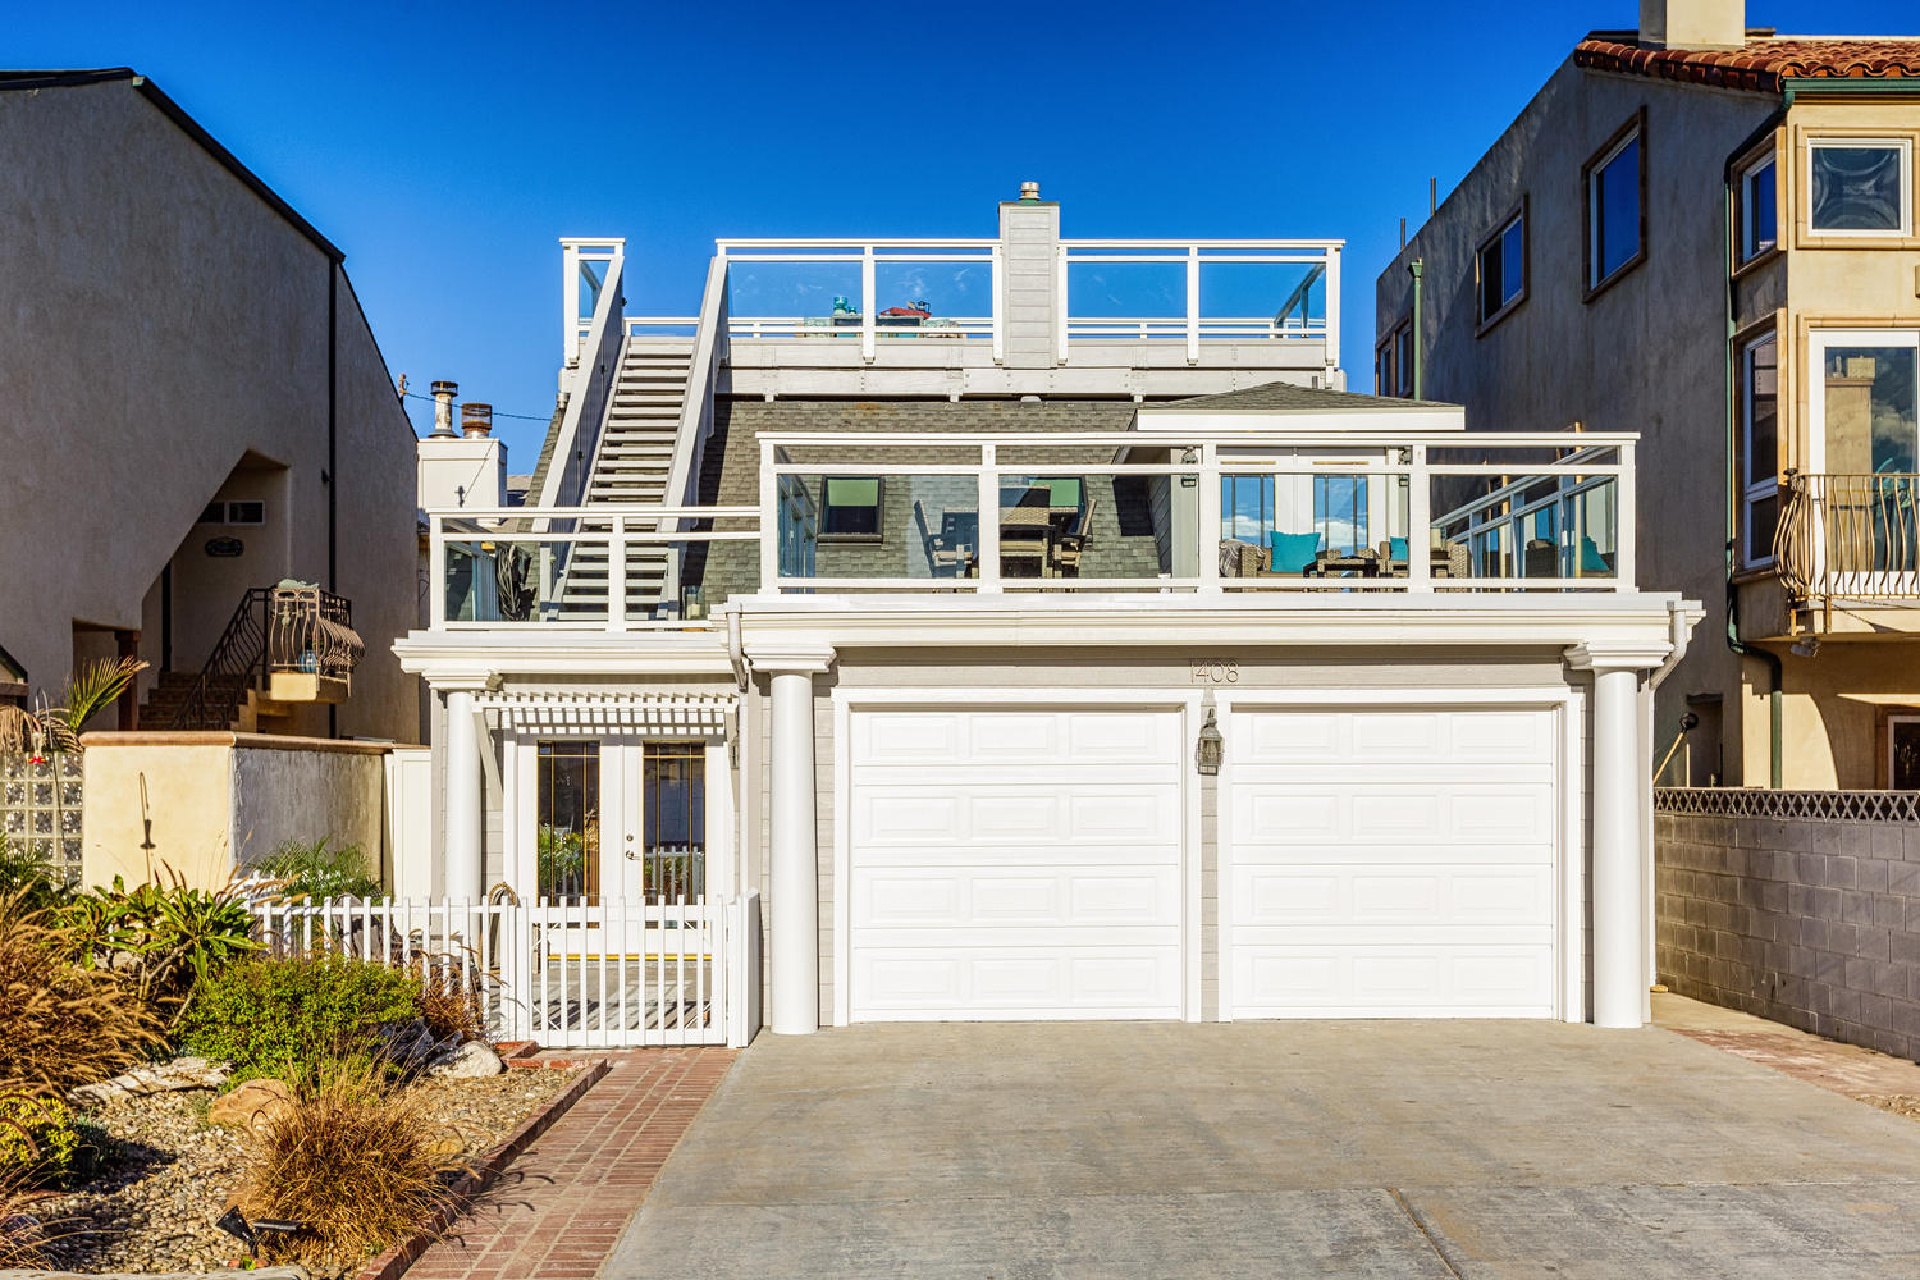 https://addressrealestate.com/media/images/blogs/38/2/b_28-1408-ocean-dr-oxnard-ca-93035-mls-size-025-24-front-of-home-1500x1000-72dpi.jpg